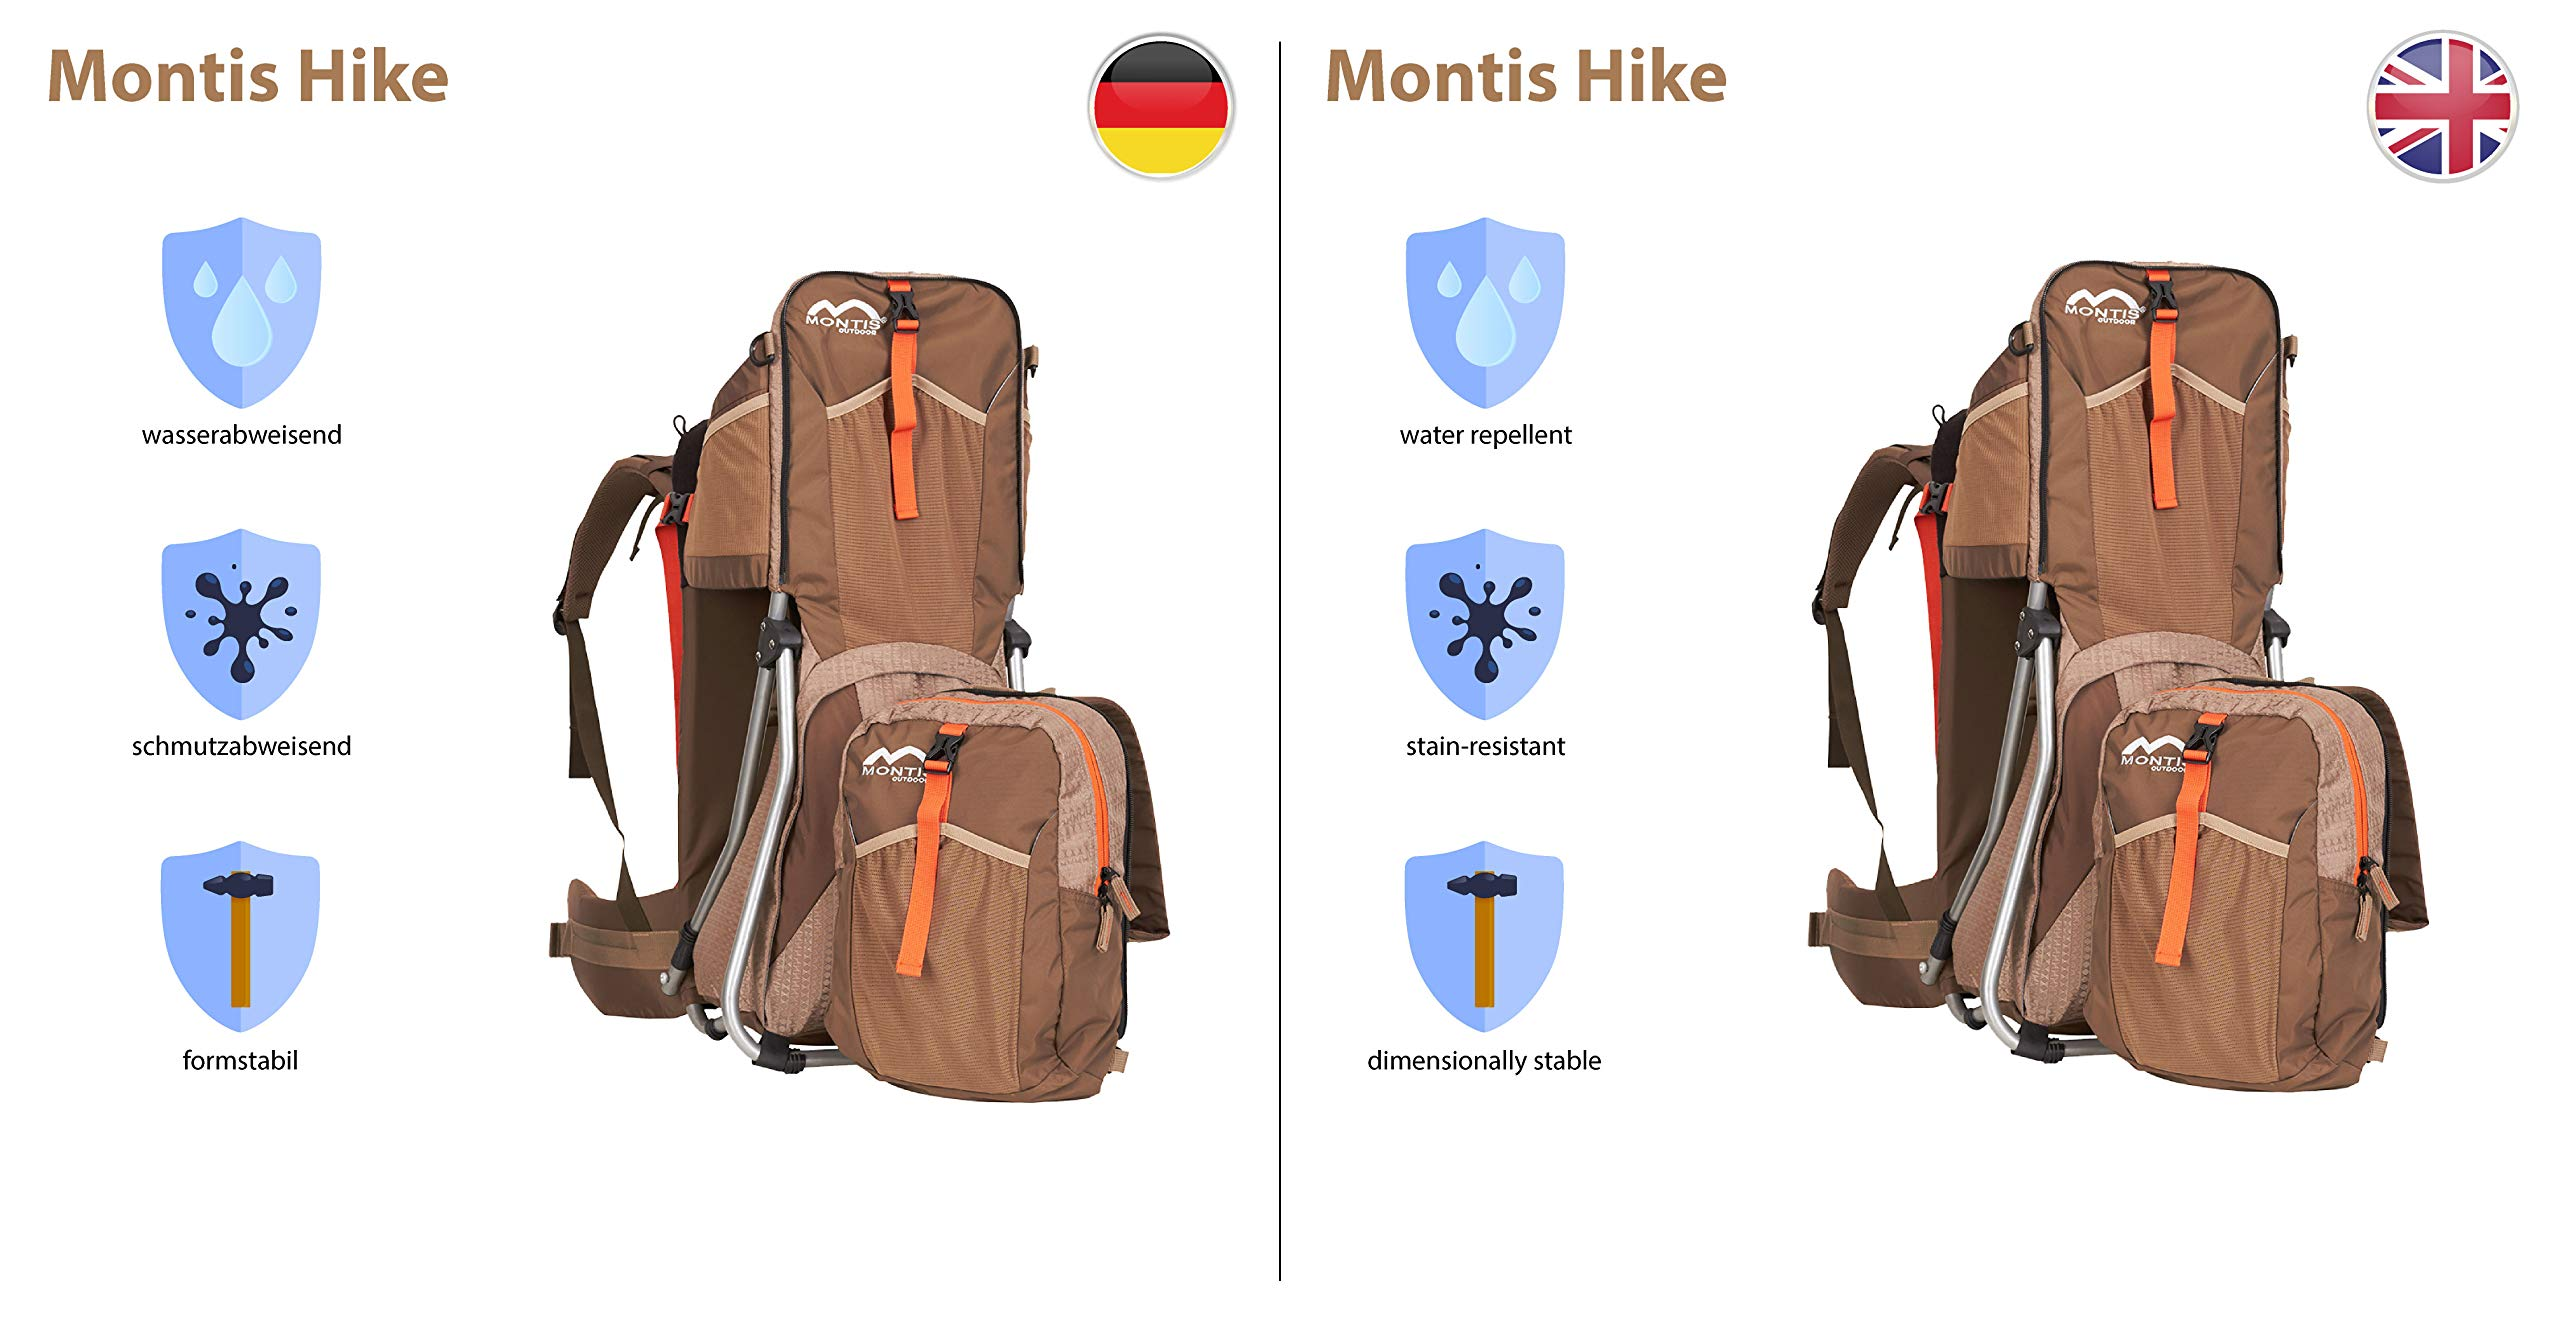 MONTIS HIKE, Premium Back Baby/Child Carrier, Up to 25kg, (mocha) M MONTIS OUTDOOR 89cm high, 37cm wide | up to 25kg | various colours | 28L seat bag Laminated and dirt-repellant outer material | approx. 2.2kg (without extras) Fully-adjustable, padded 5-point child's safety harness | plush lining, raised wind guard, can be filled from both sides | forehead cushion 5